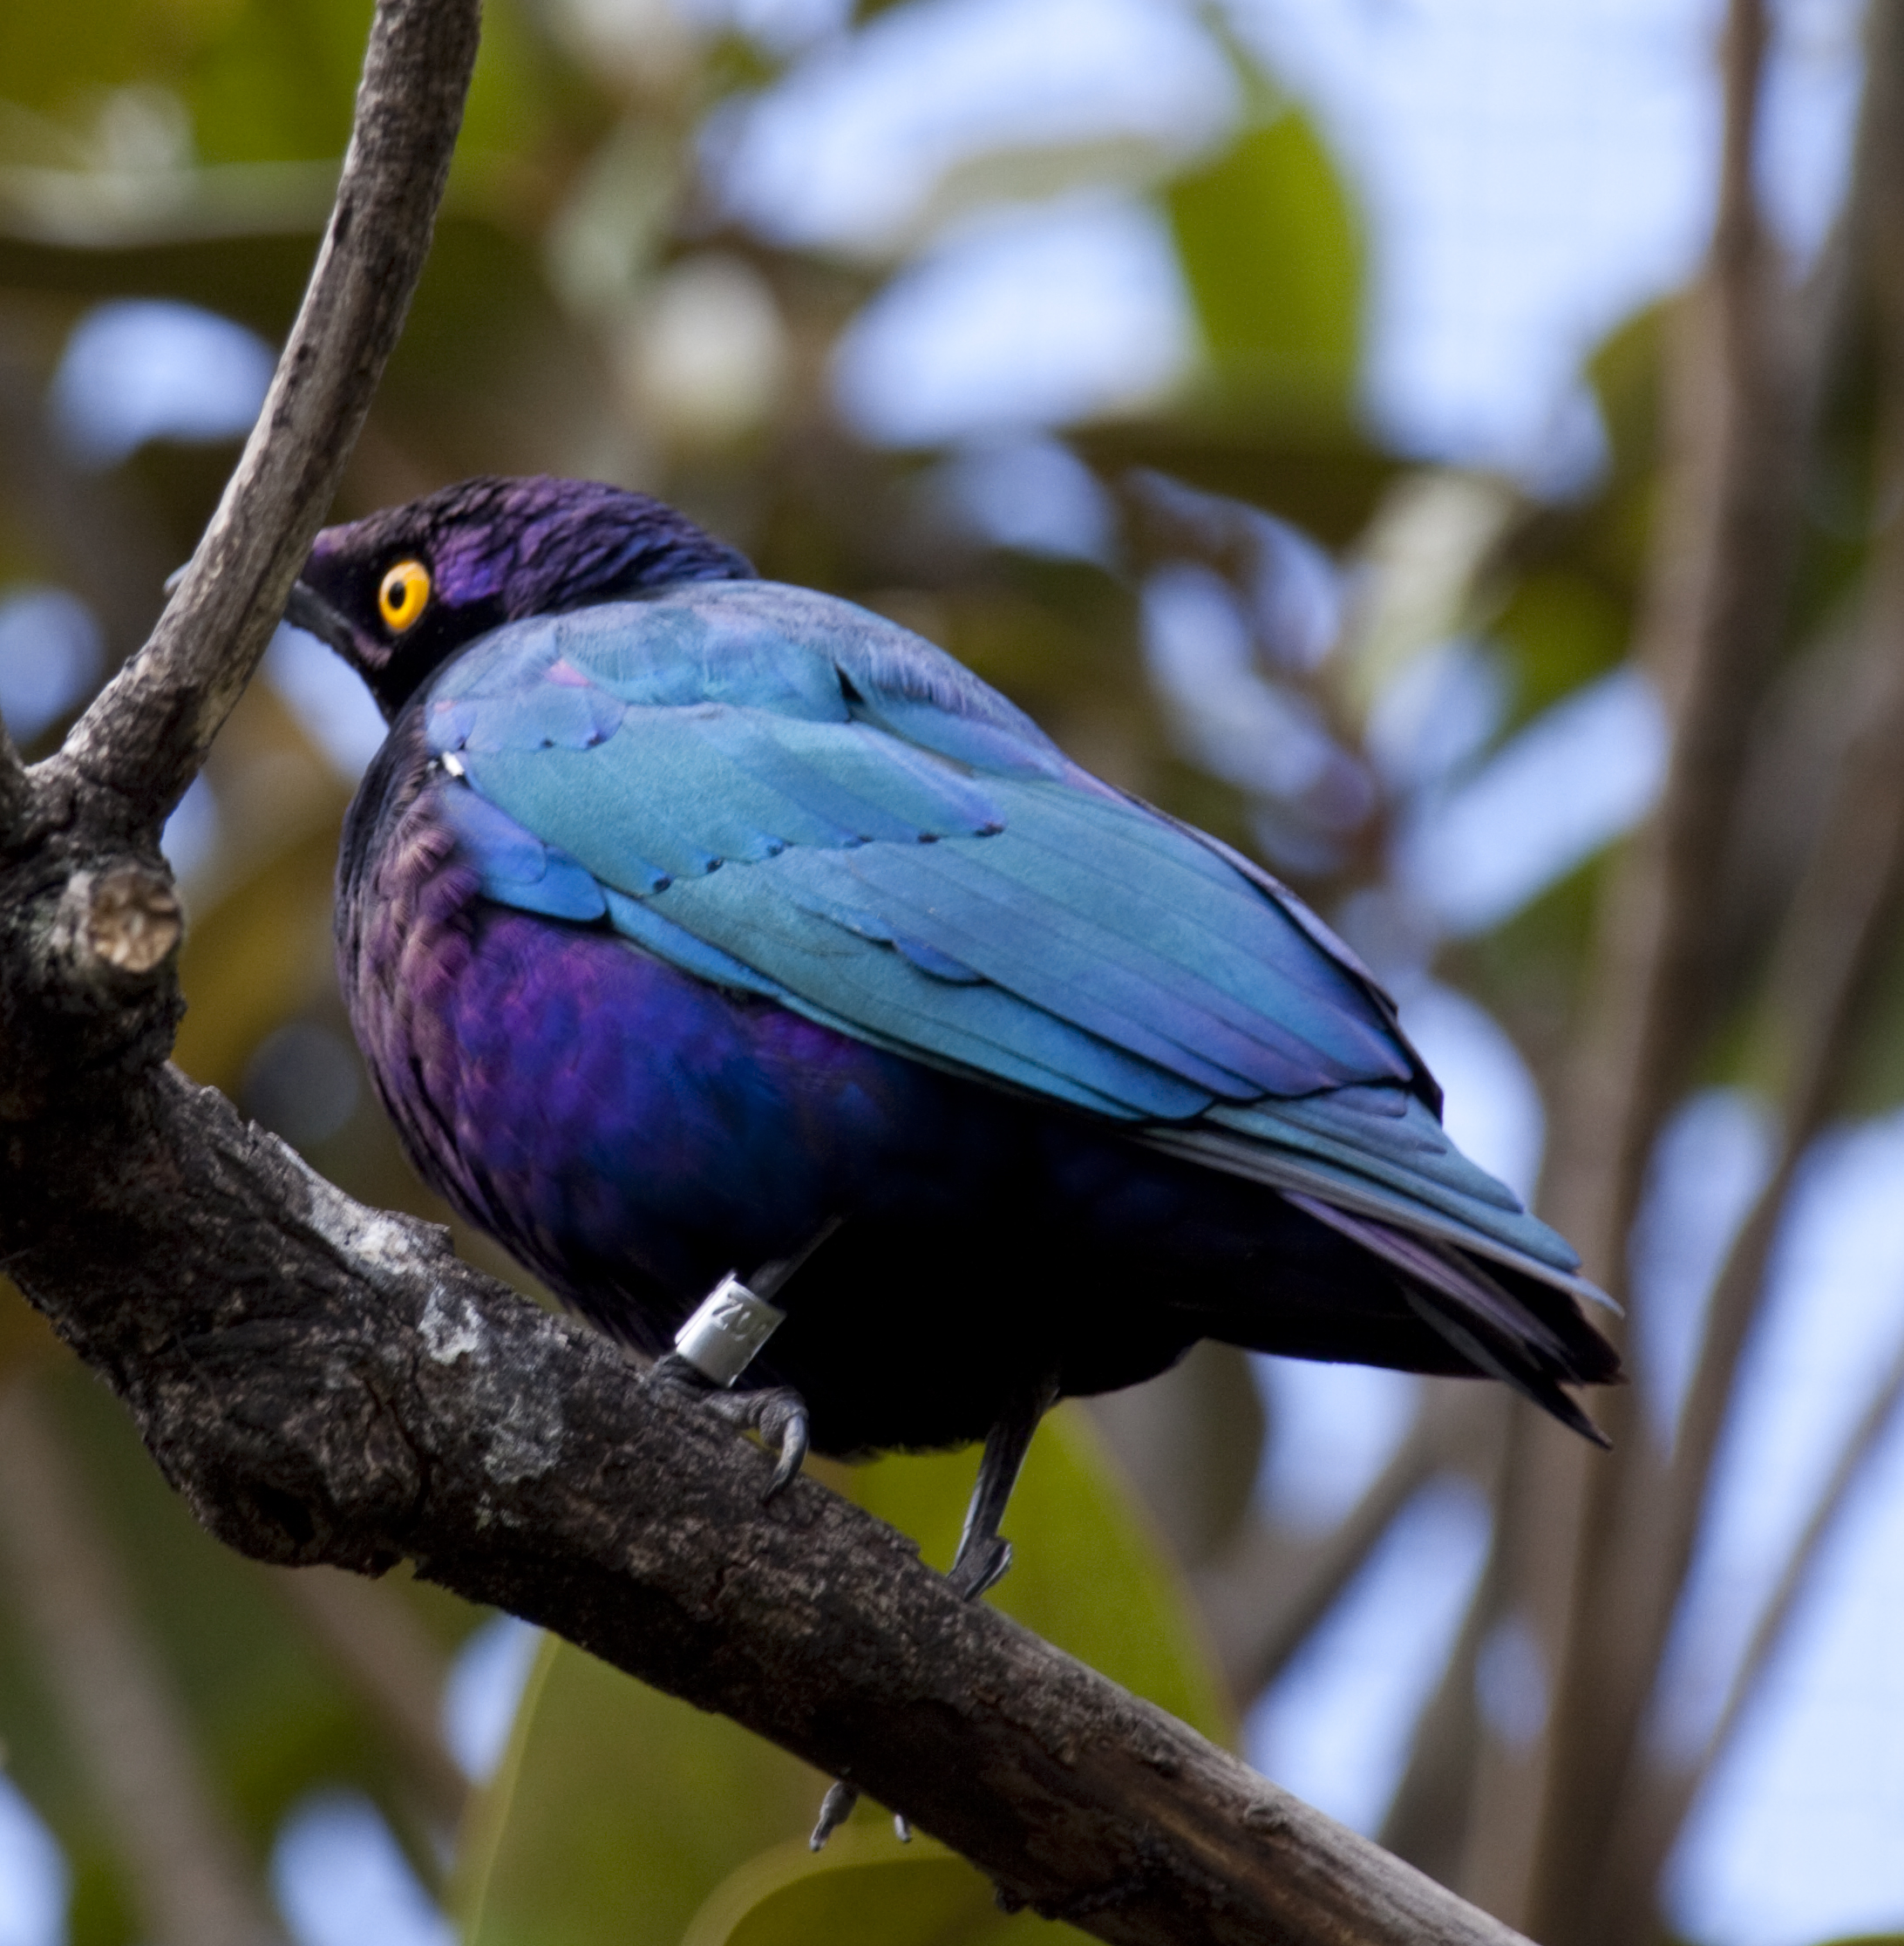 http://upload.wikimedia.org/wikipedia/commons/1/11/Glossy-starling_Blue_and_Purple_Bird_1_(4872698898).jpg